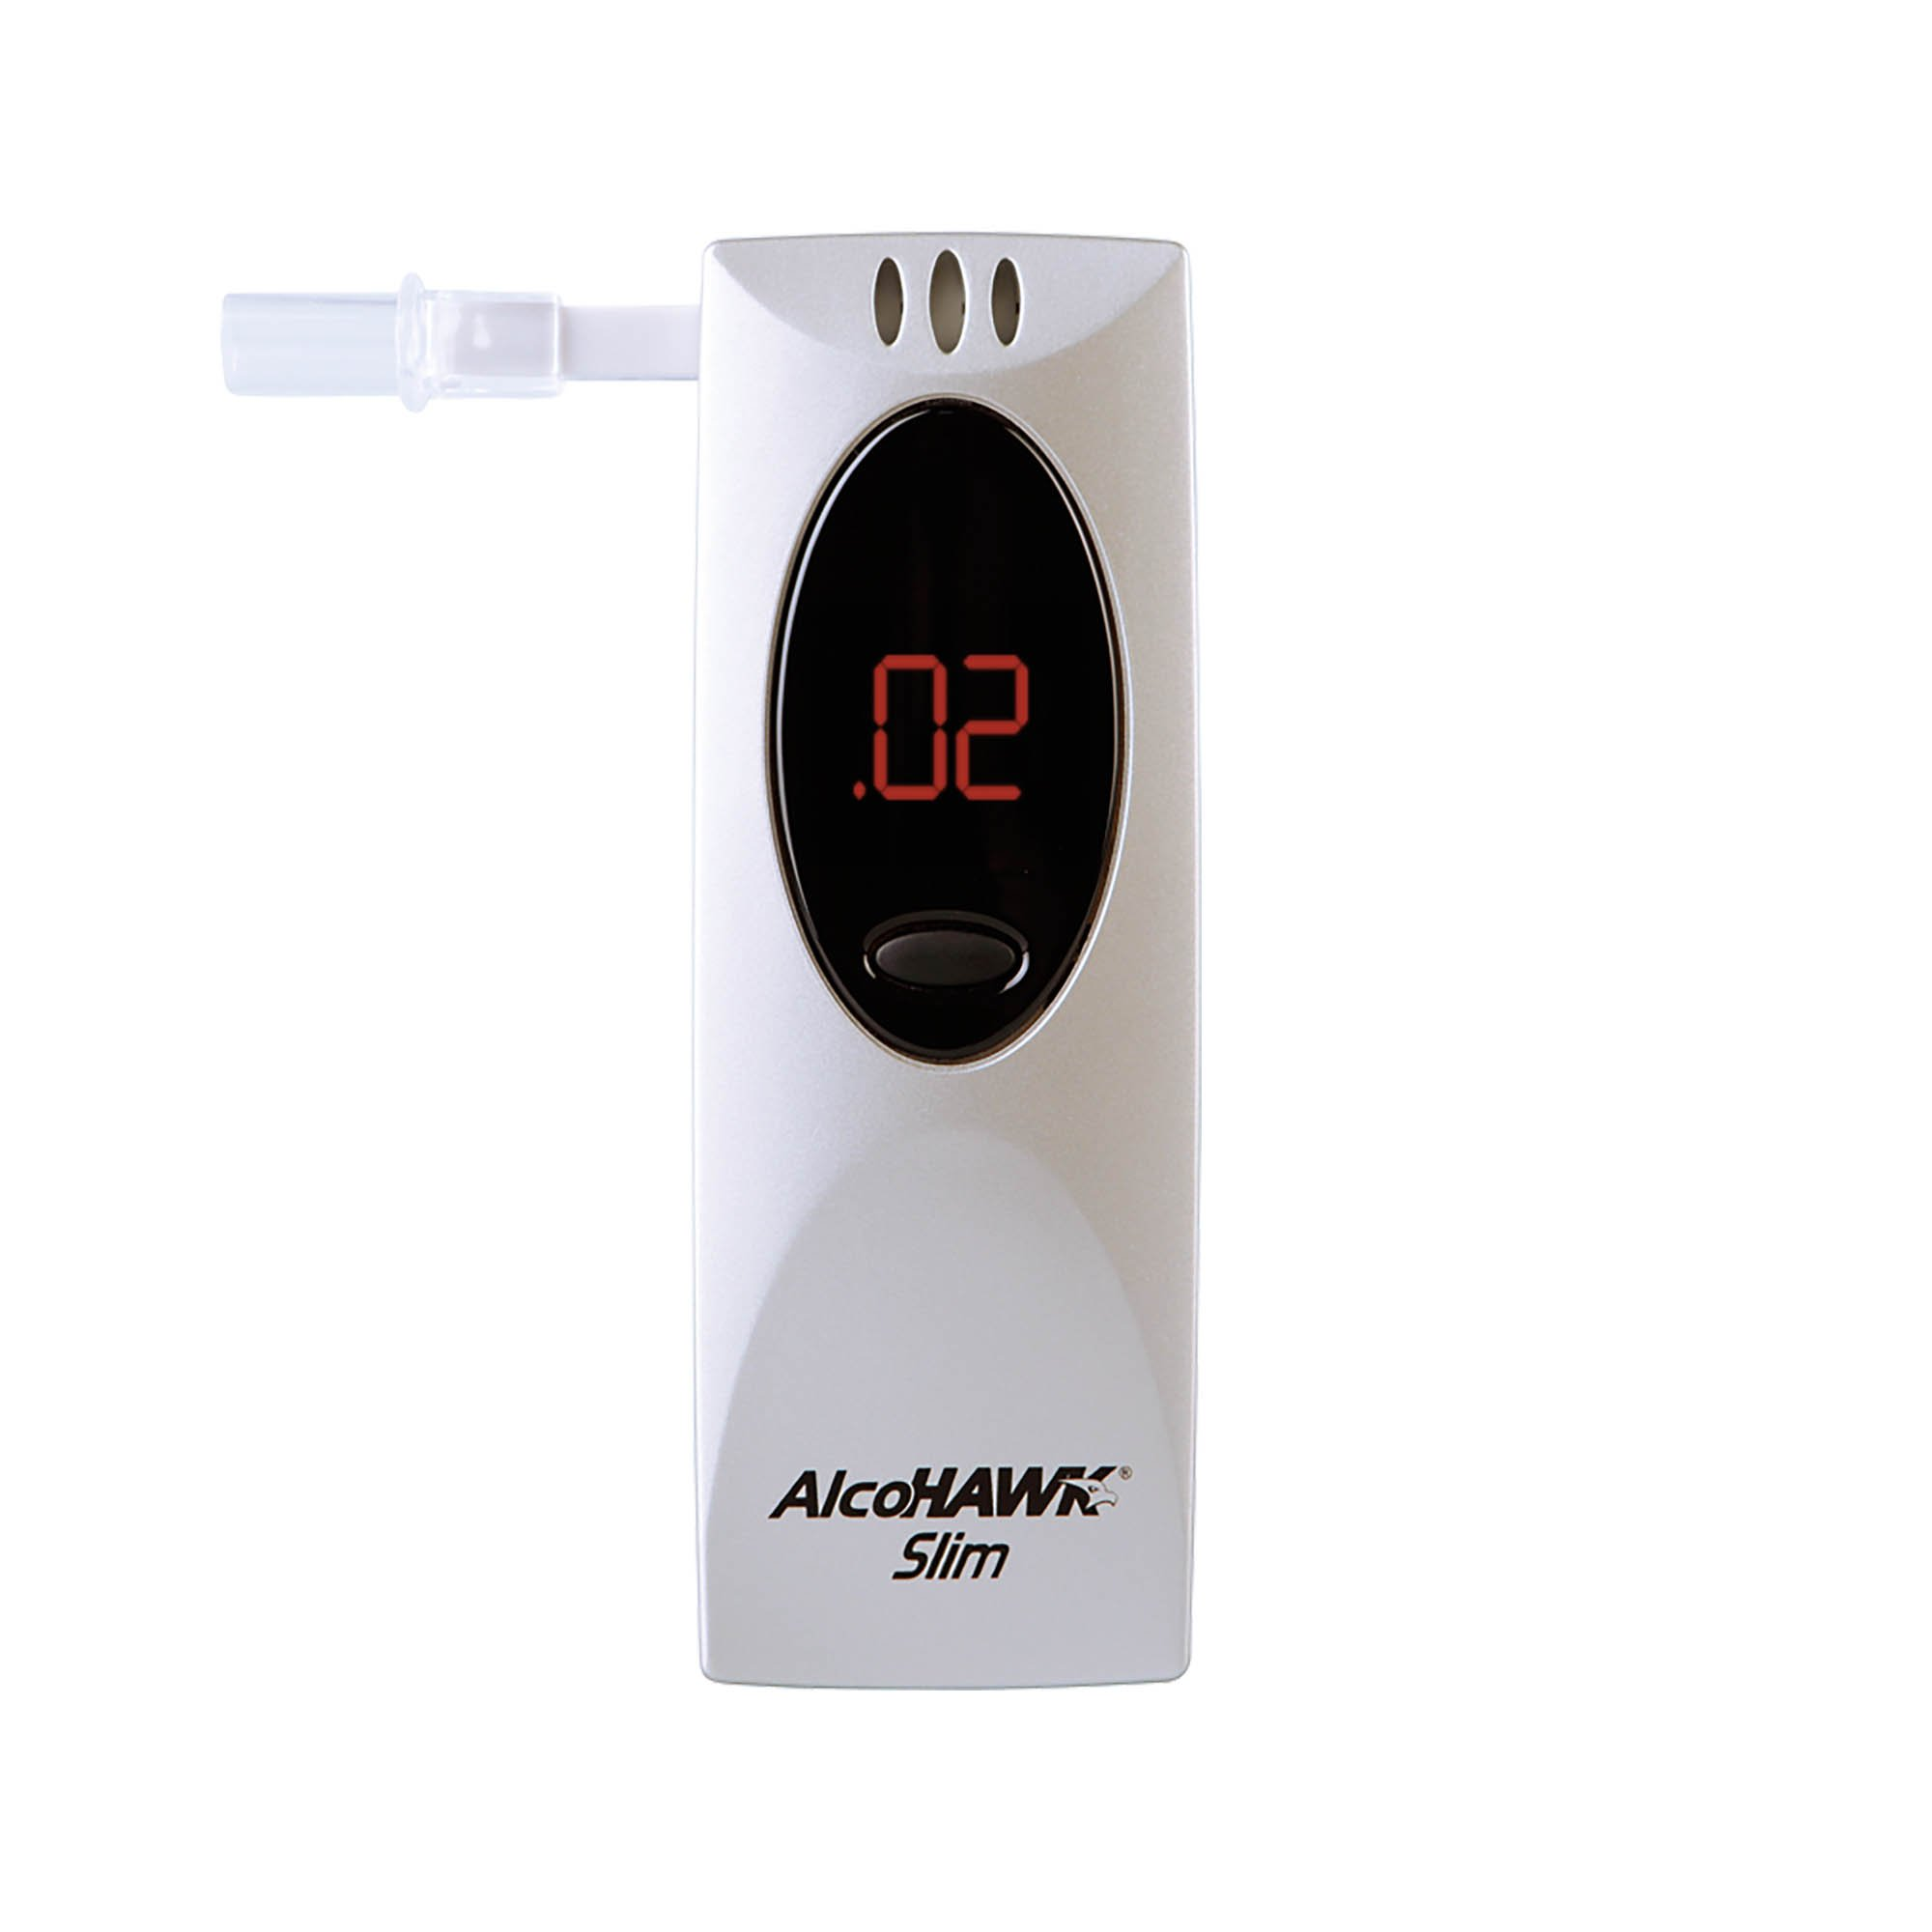 AlcoHAWK Slim Breathalyzer, Semi-Conductor Sensor Breath Alcohol Tester, Portable Personal use Alcohol Detector, Highly Accurate and Fast Results, BAC Tracker Digital LED screen includes 3 Mouthpieces by AlcoHawk